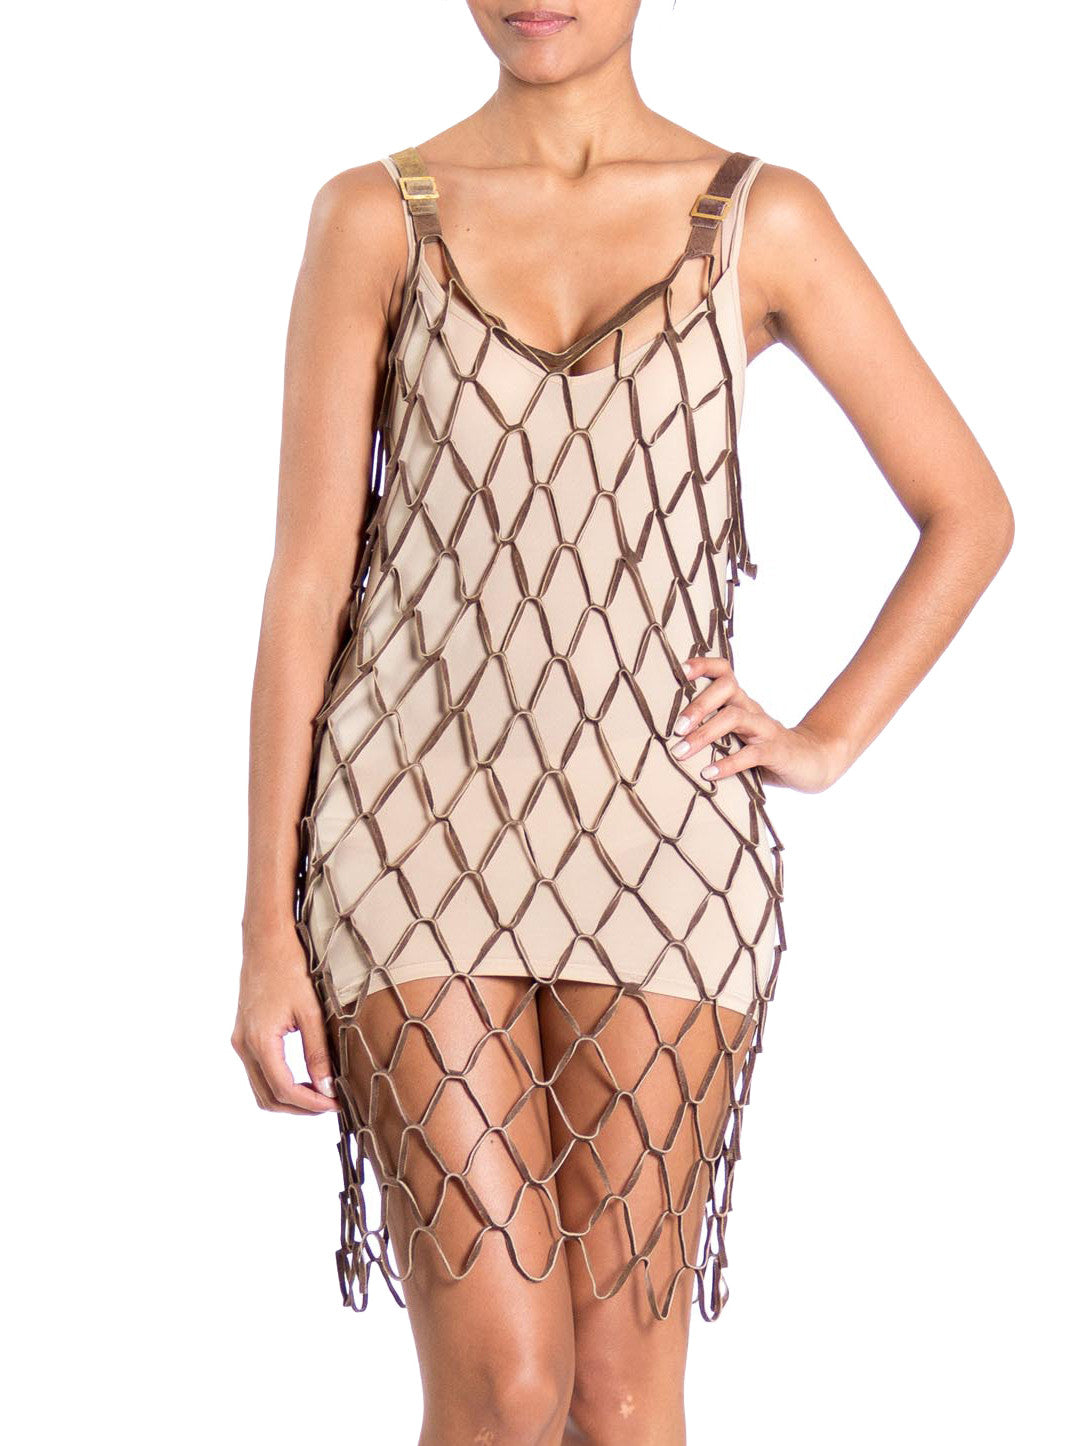 1990s Leather Open Weave Chainmail Buckle Strap Mini Dress